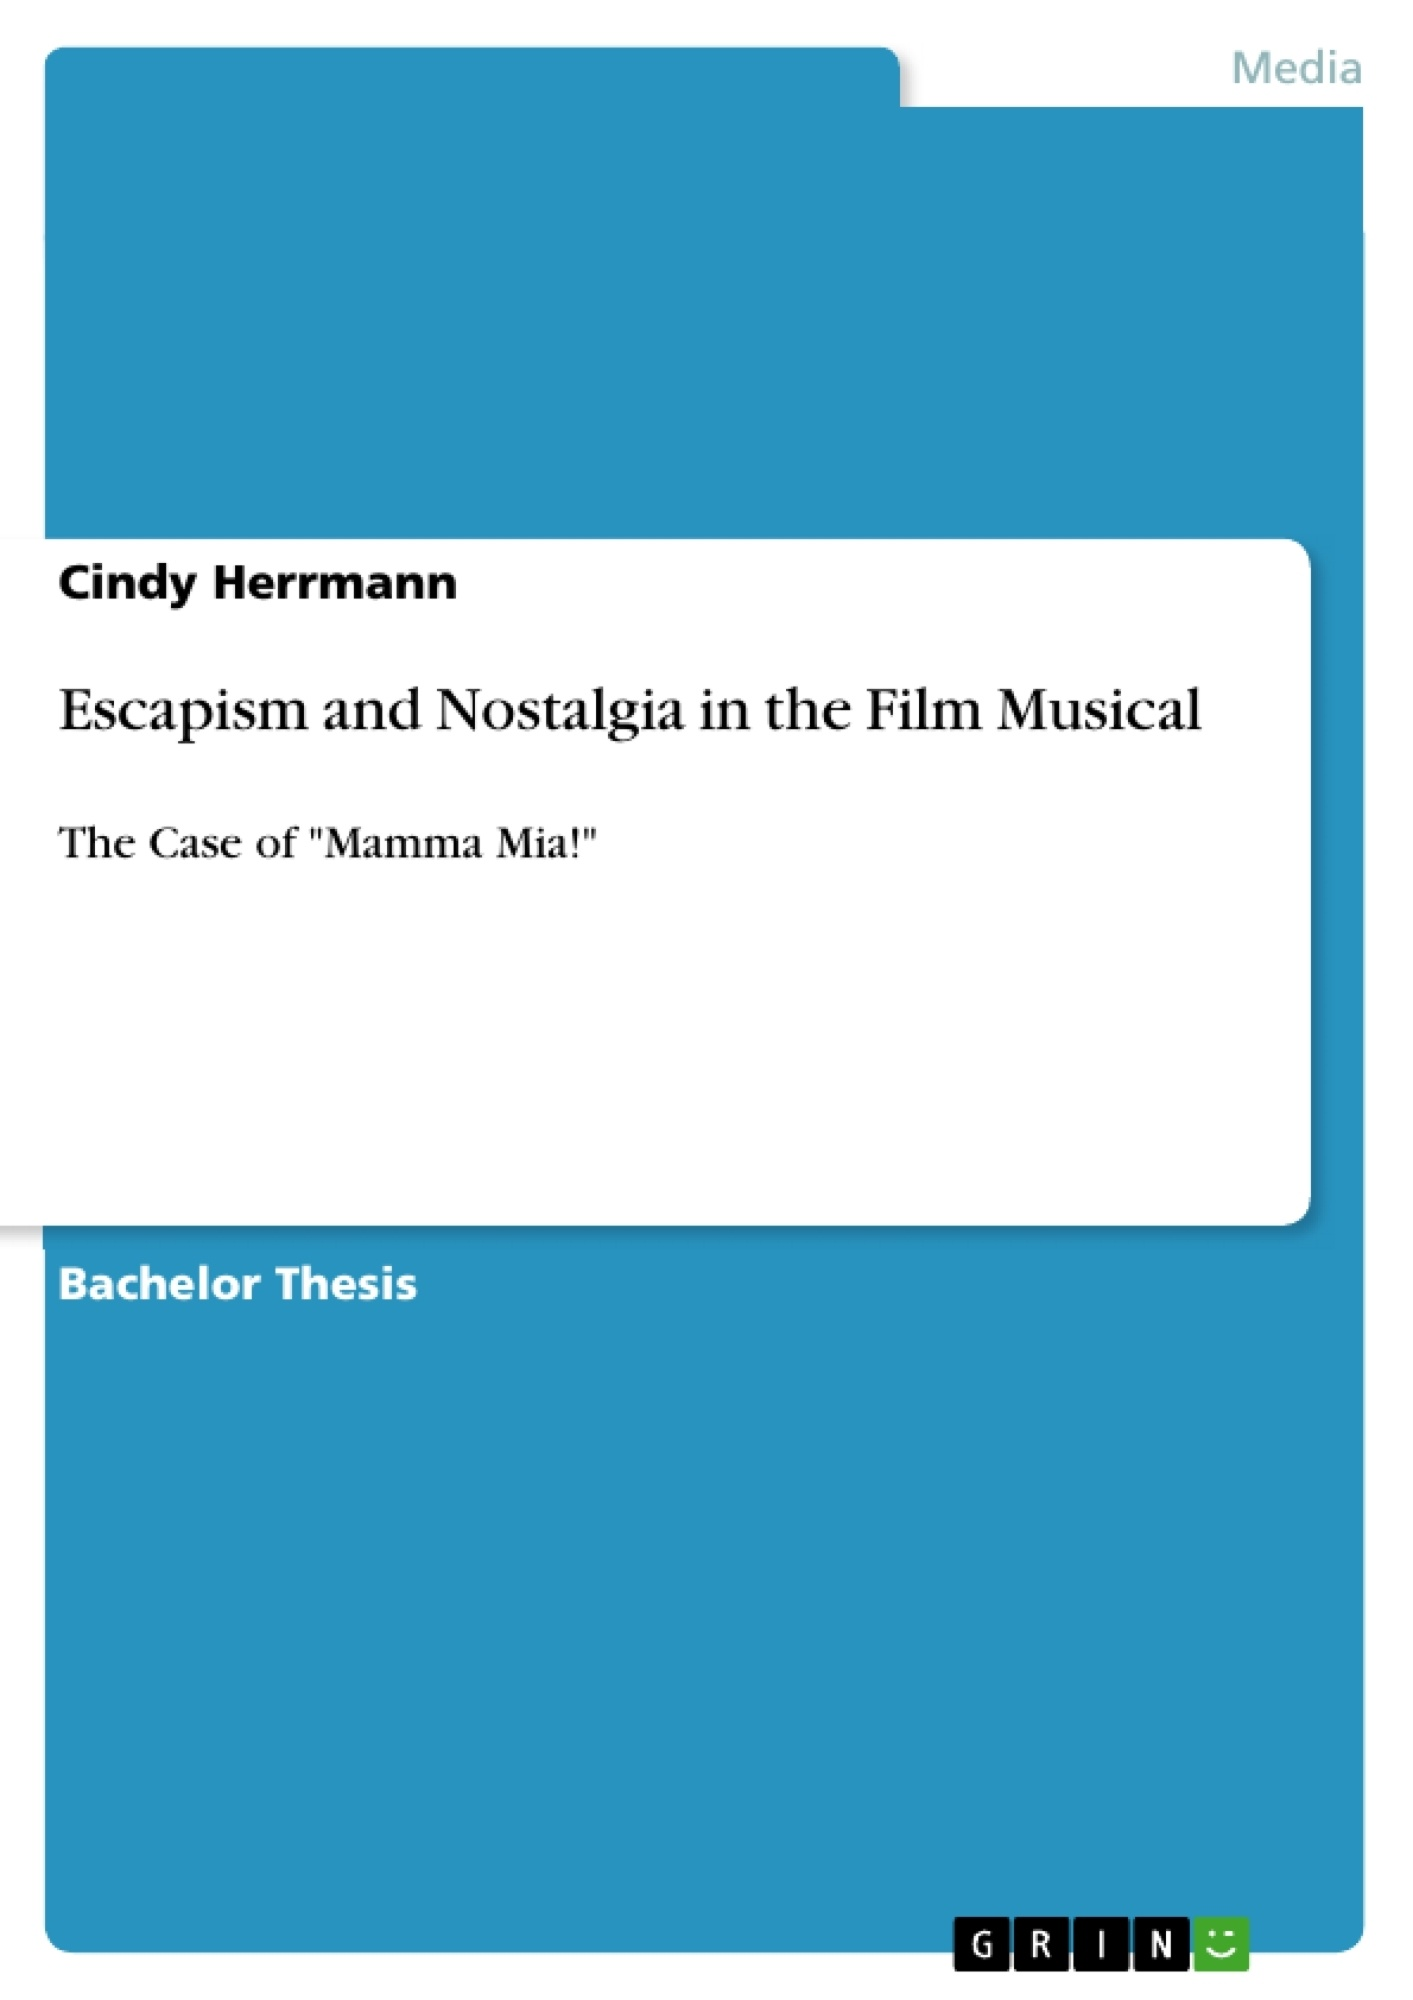 Title: Escapism and Nostalgia in the Film Musical